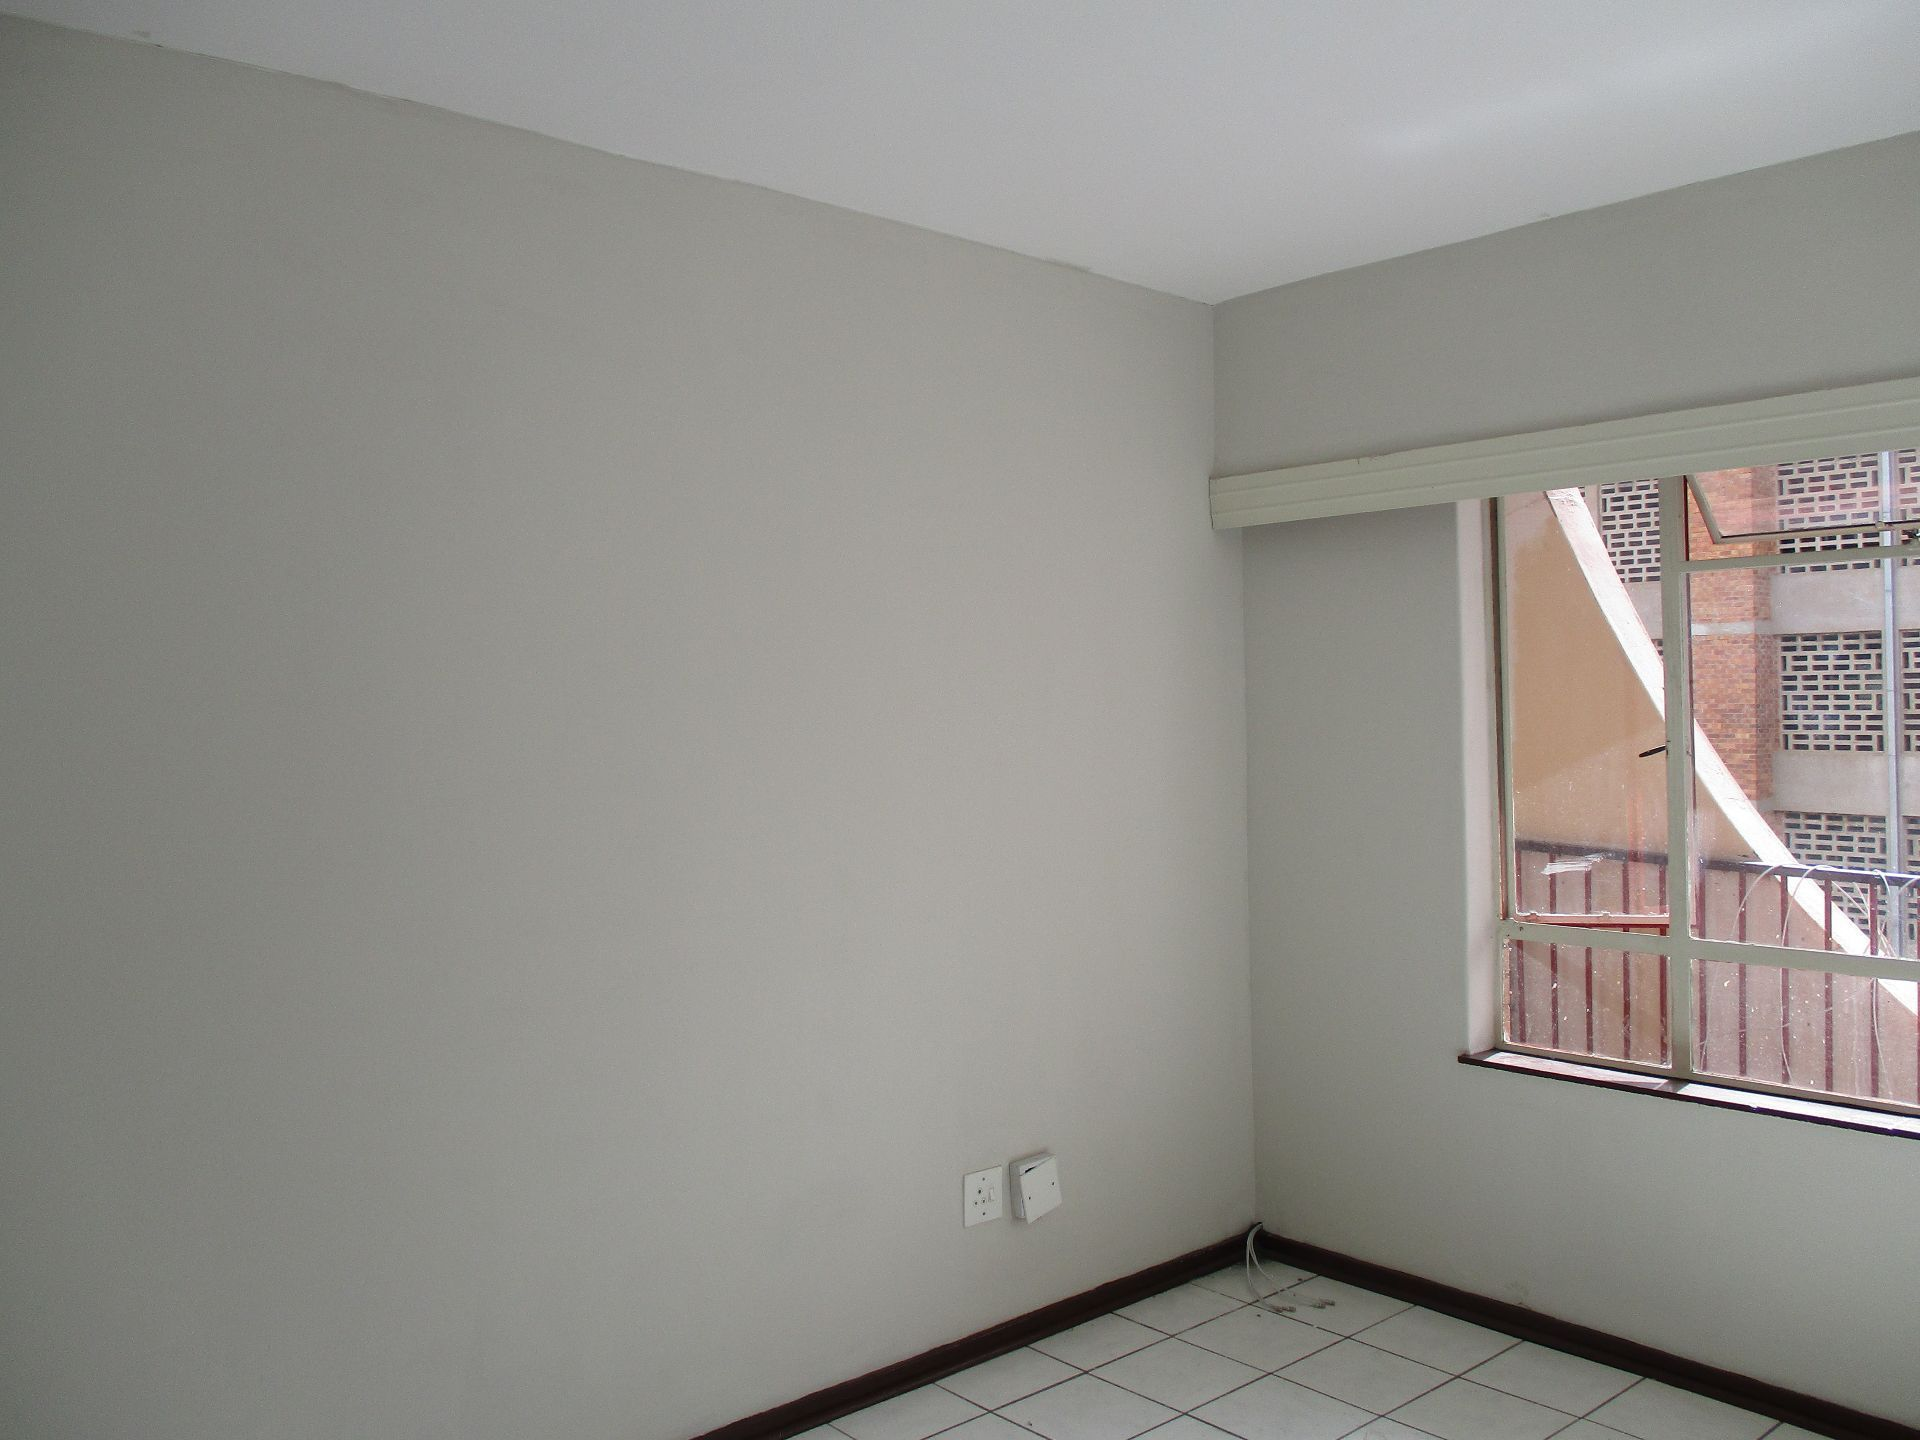 Apartment in Central - 1160198_large.jpg